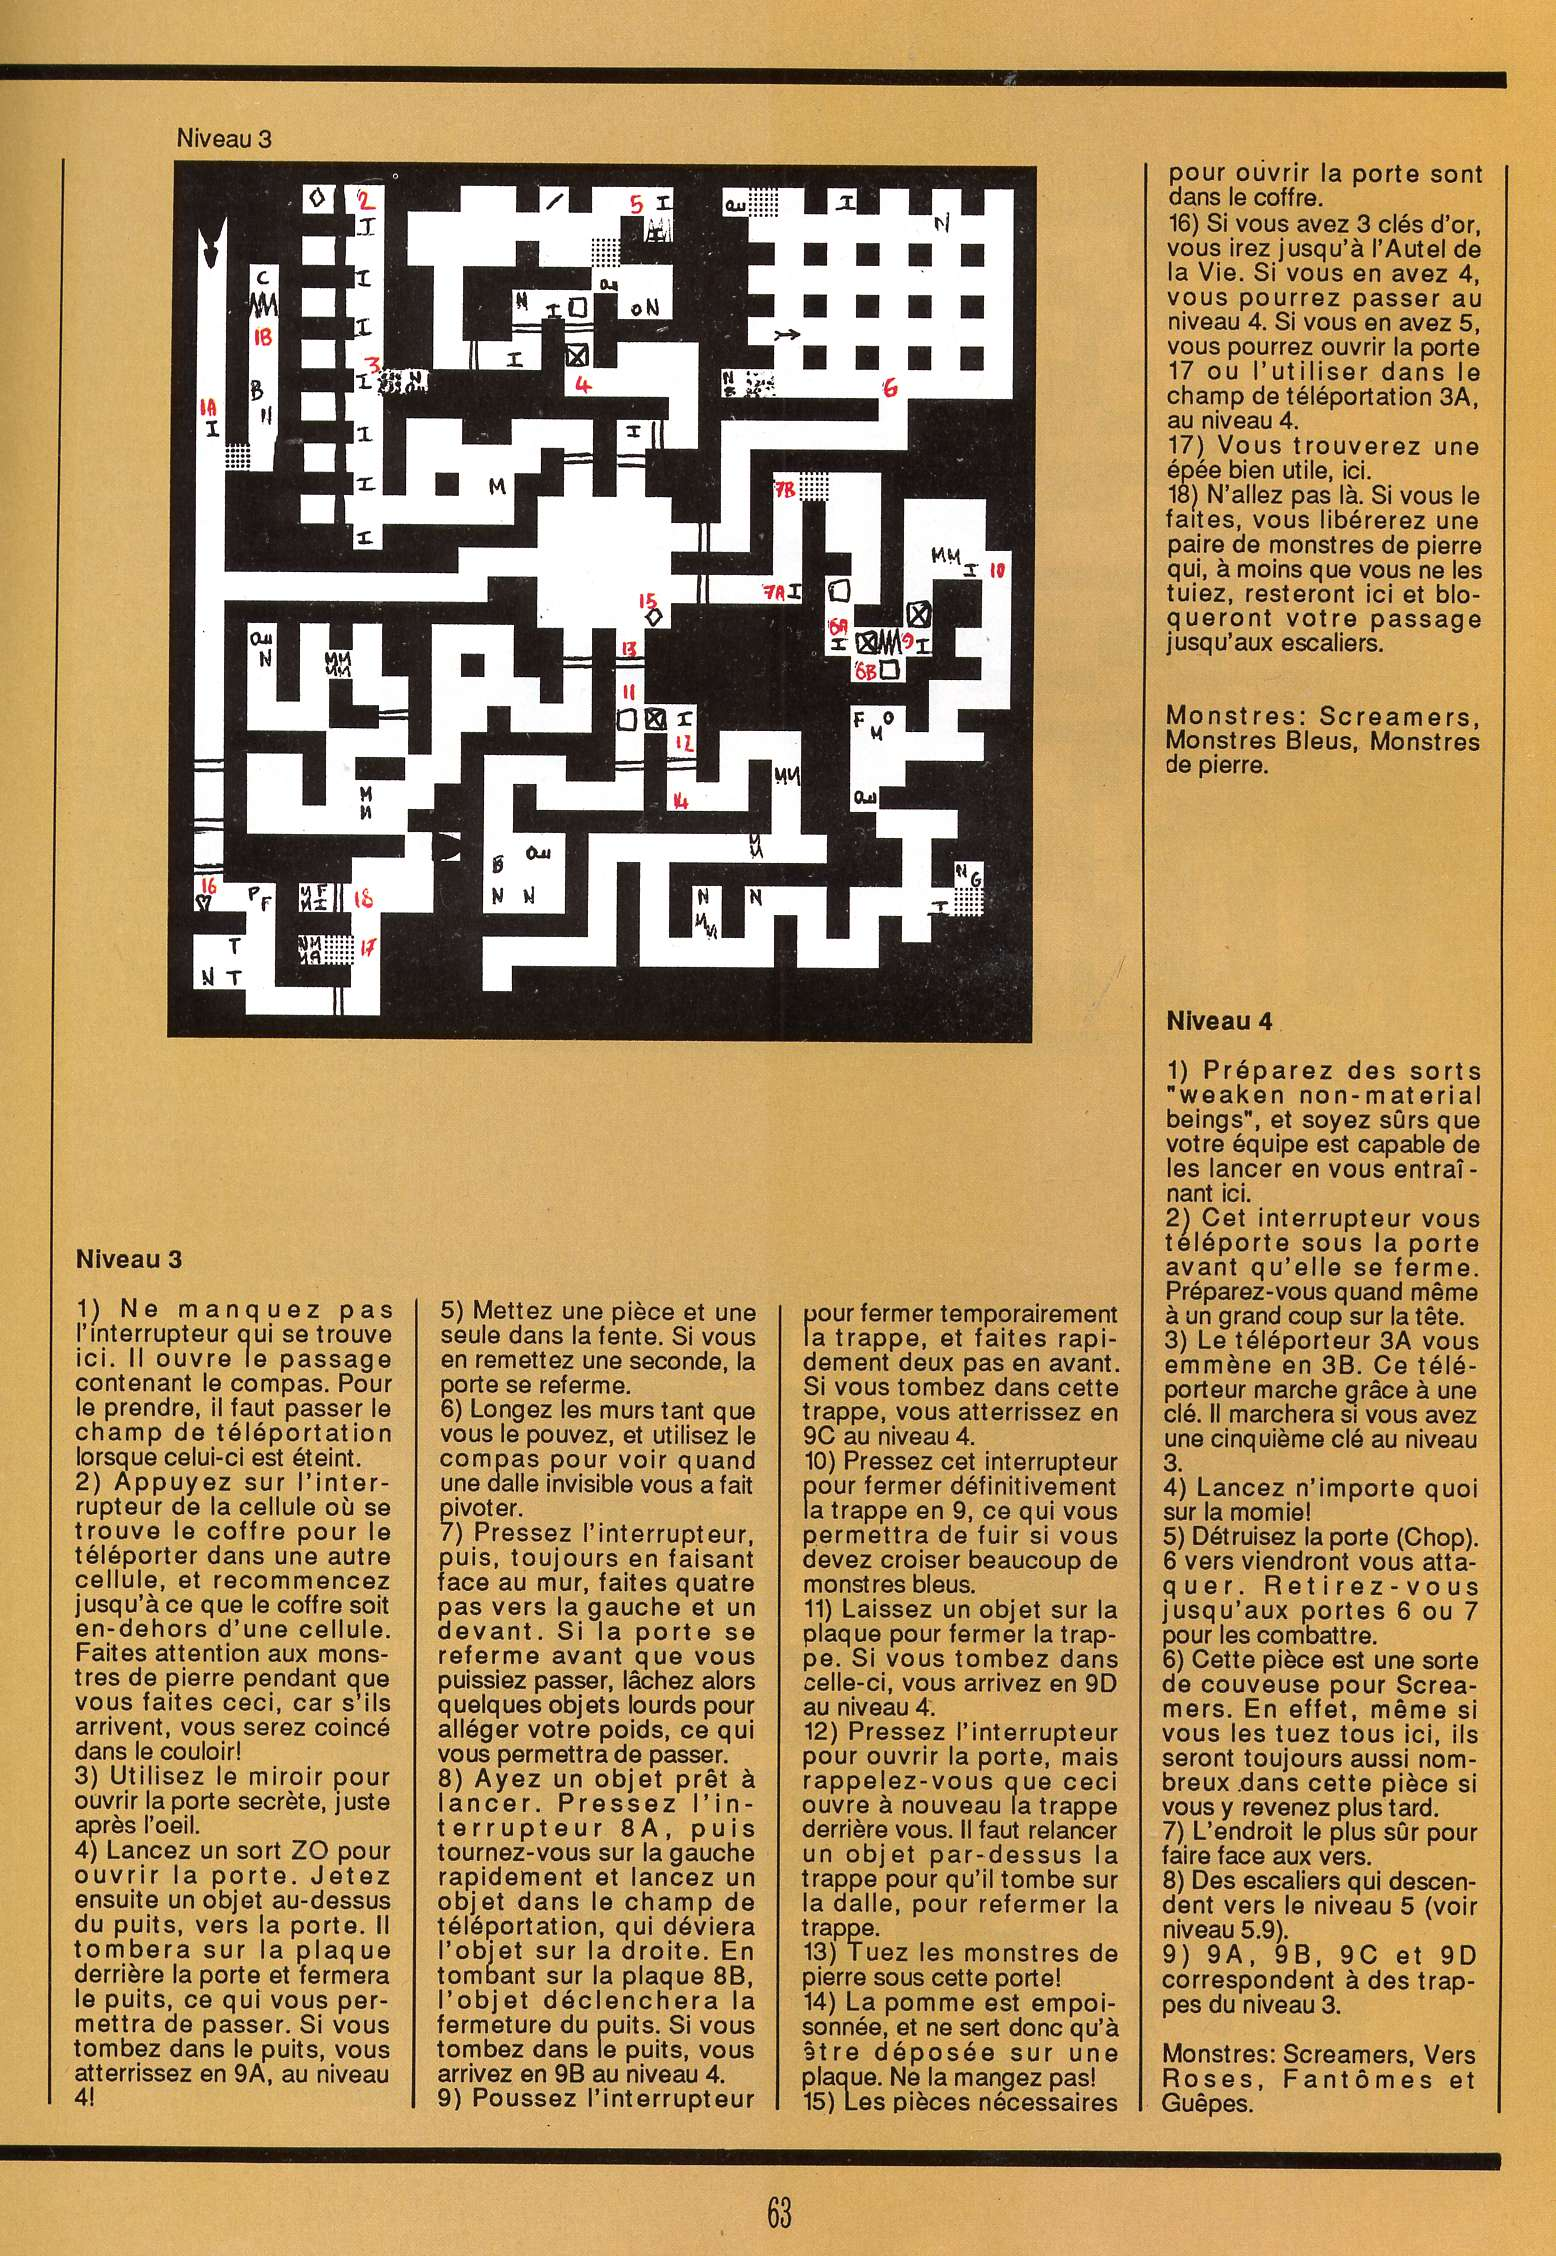 Dungeon Master for Atari ST Guide published in French magazine 'Gen4', Issue #9, March 1989, Page 63